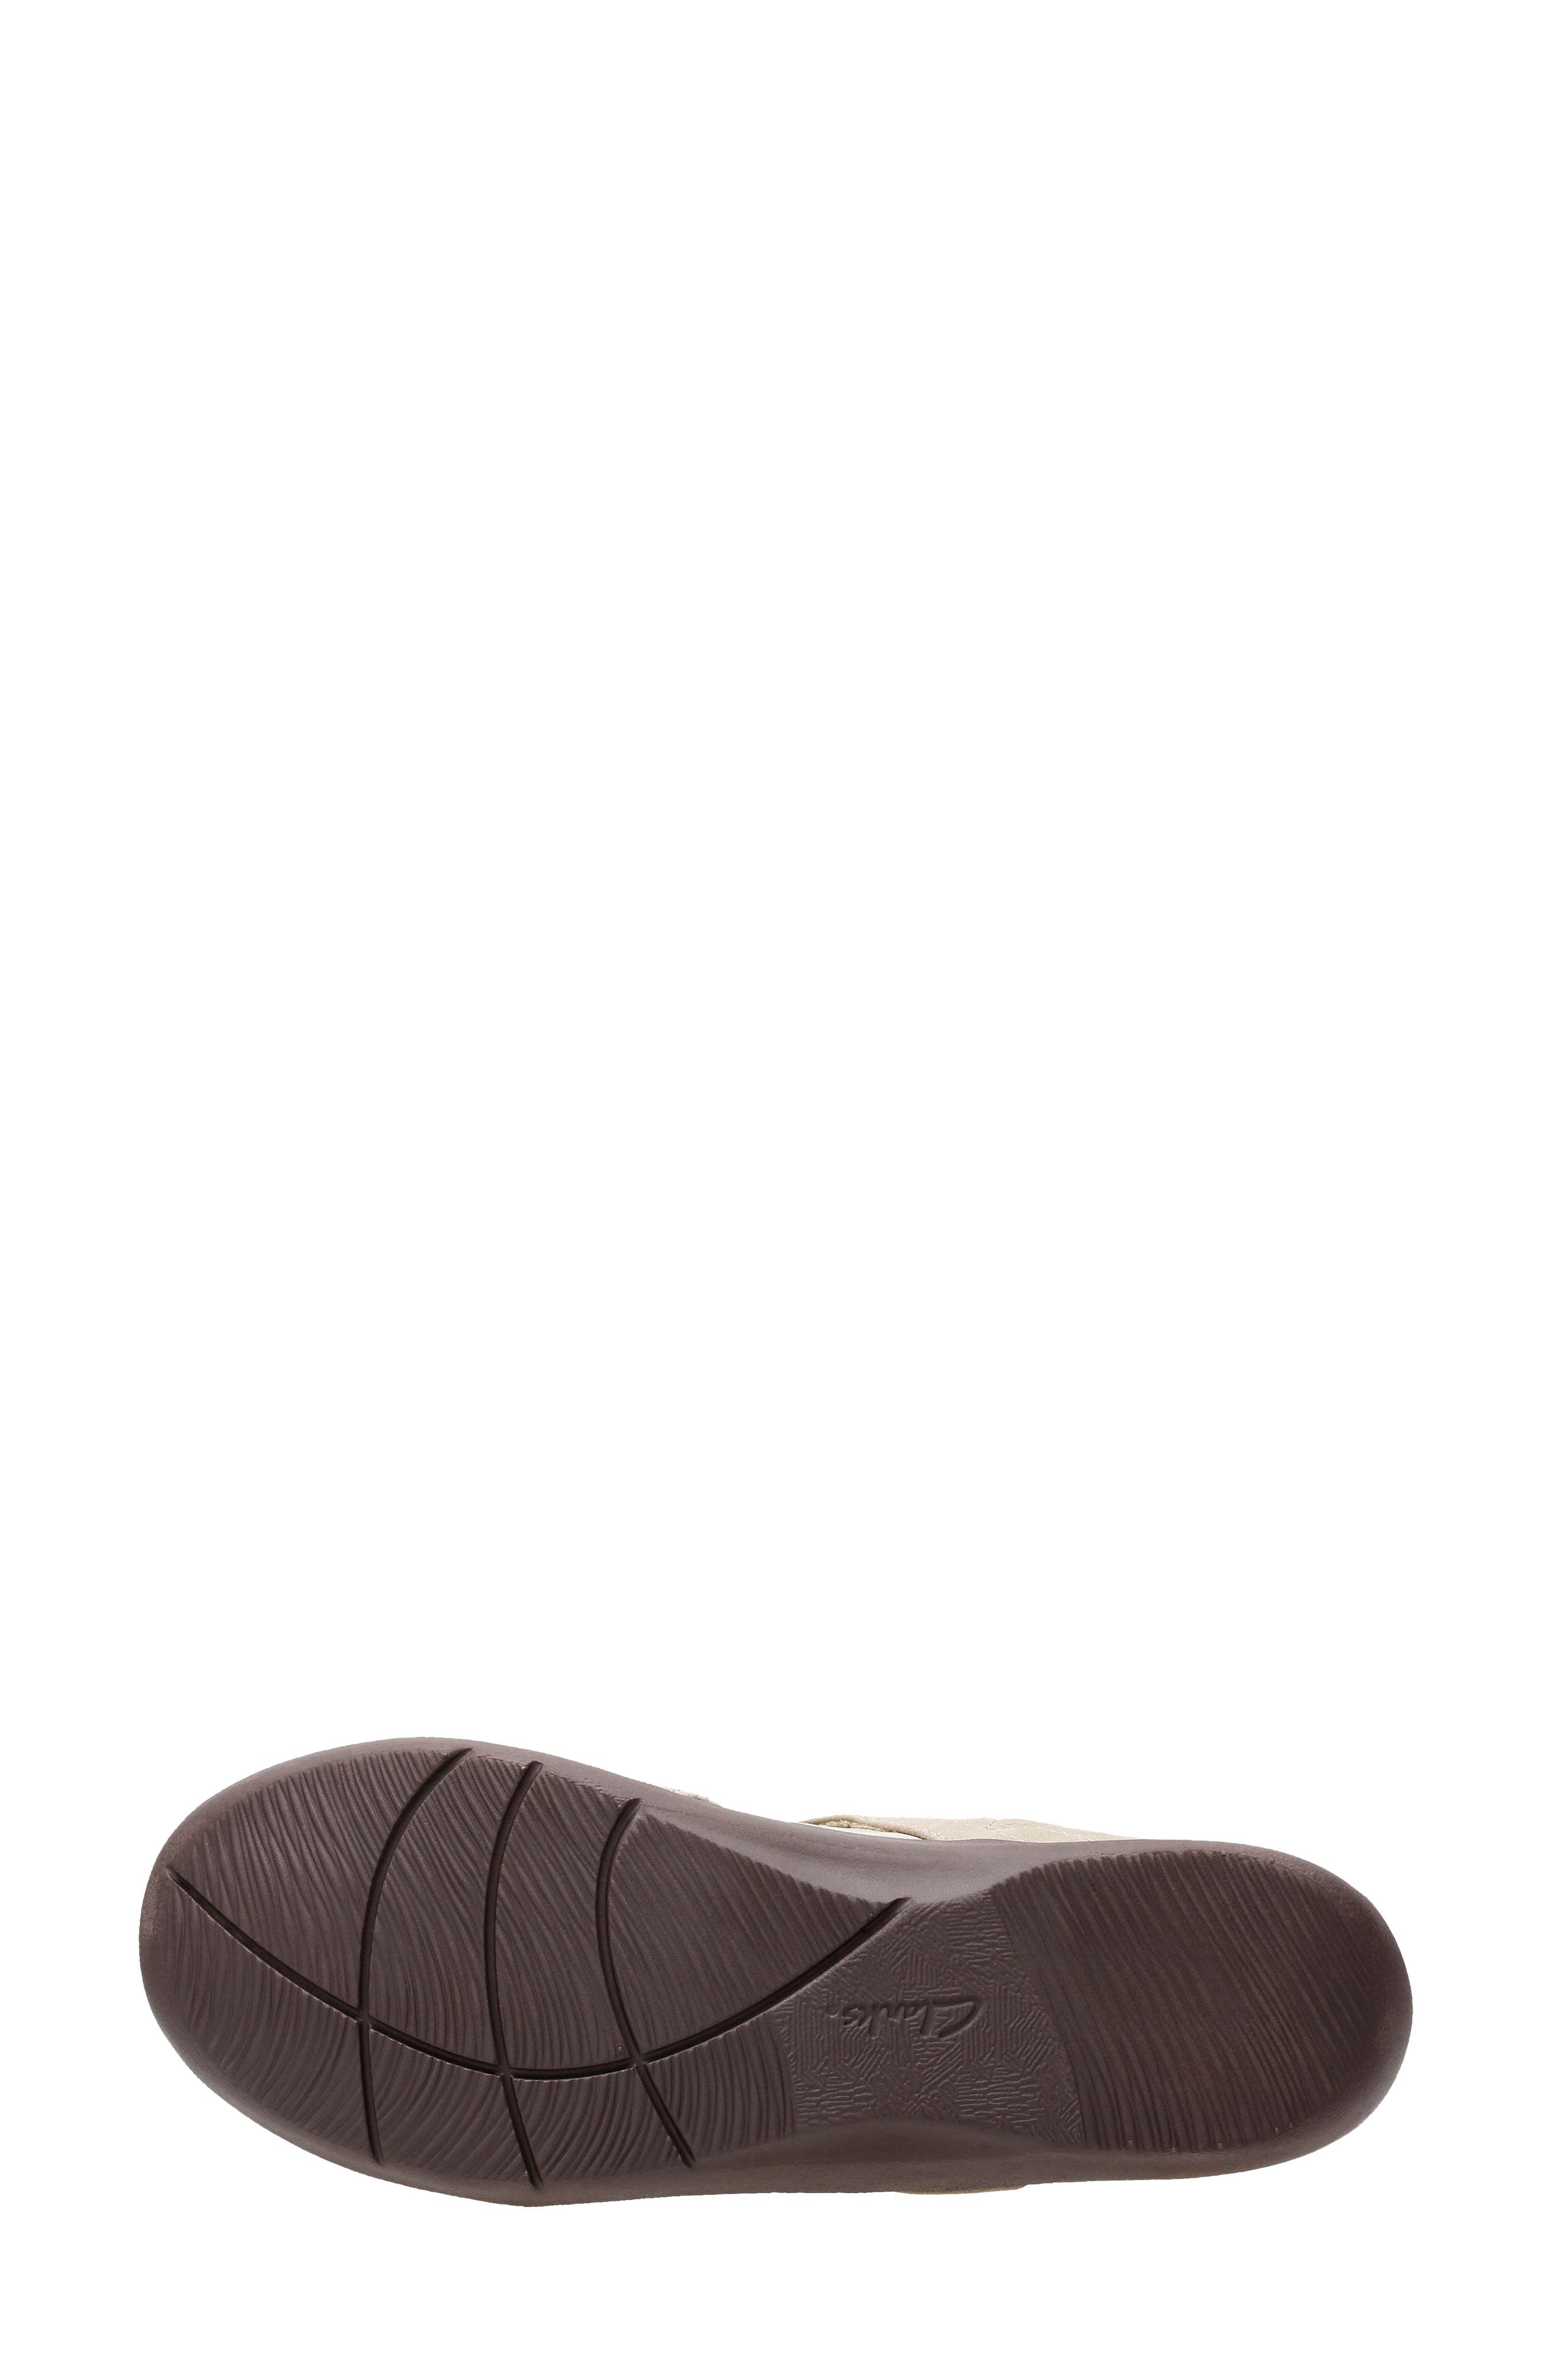 CLARKS<SUP>®</SUP>,                             Sillian Bella Mary Jane Flat,                             Alternate thumbnail 5, color,                             SAND SYNTHETIC NUBUCK